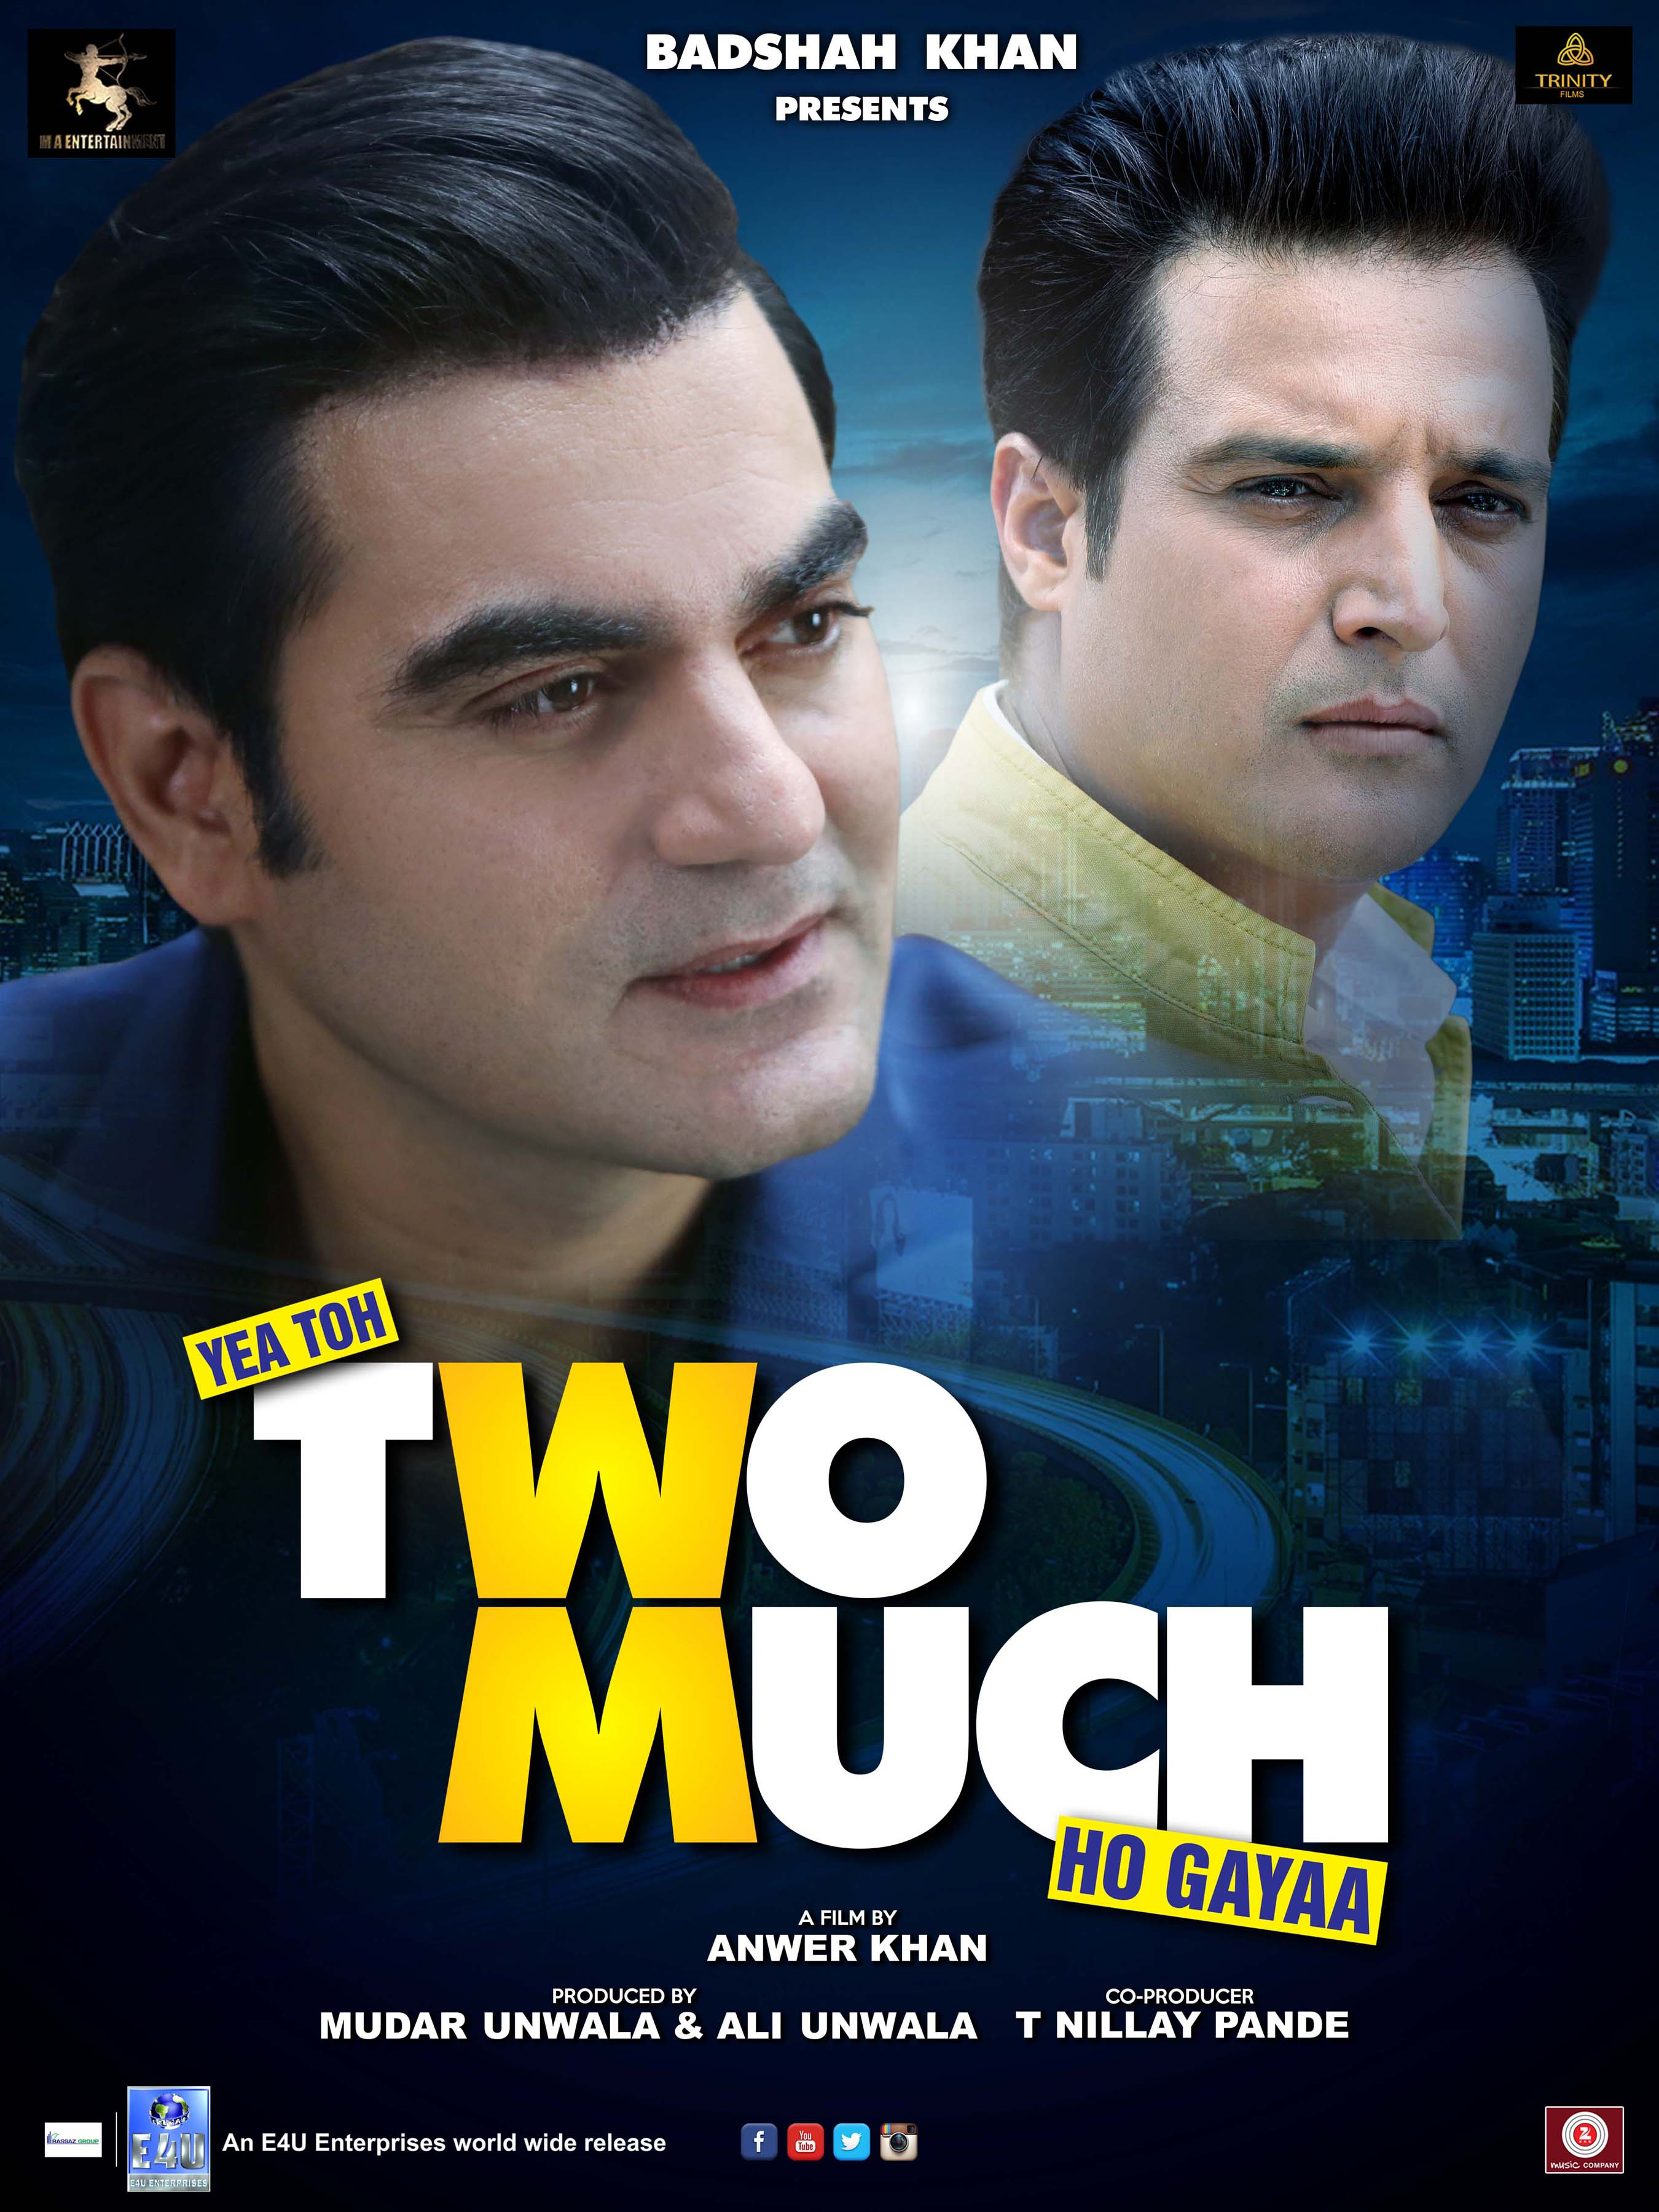 Yea Toh Two Much Ho Gayaa  poster released